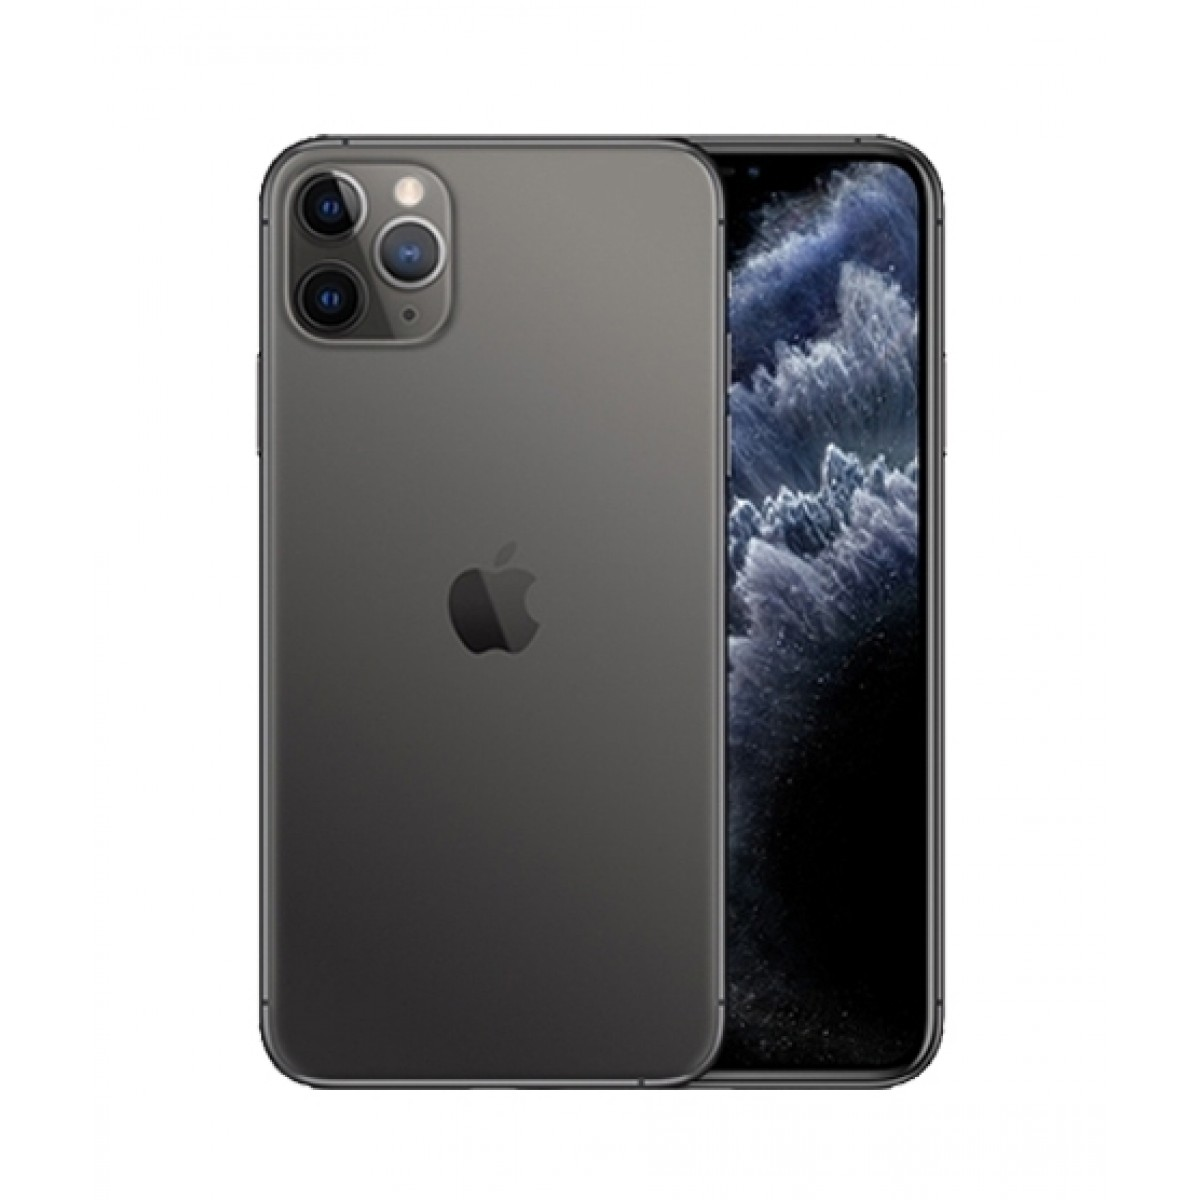 Apple iPhone 11 Pro Max Price in Pakistan | Buy Apple iPhone 11 Pro Max  512GB Dual Sim | iShopping.pk